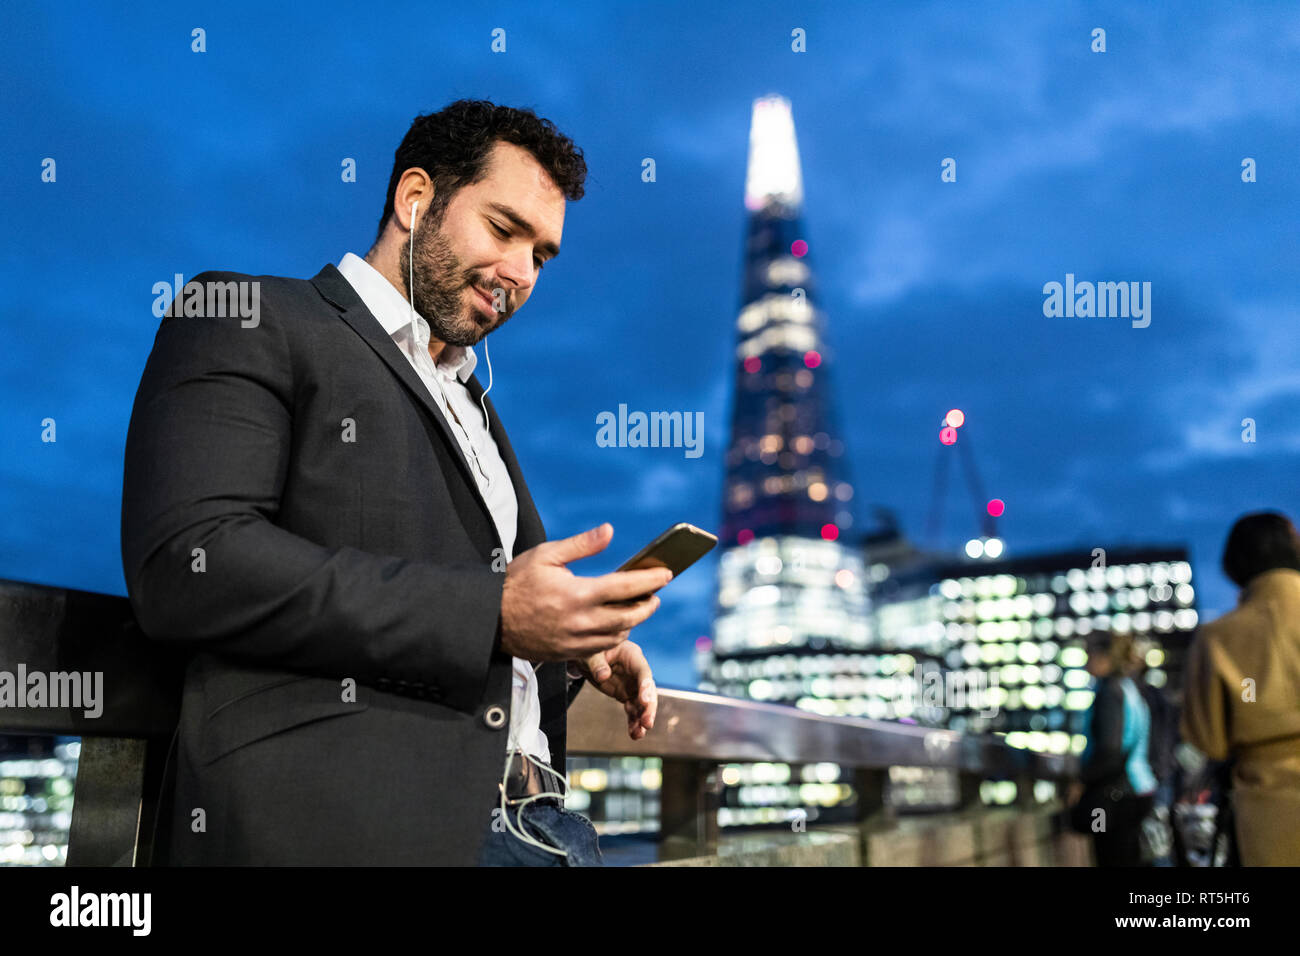 UK, London, businessman on the go checking his phone while commuting by night Stock Photo